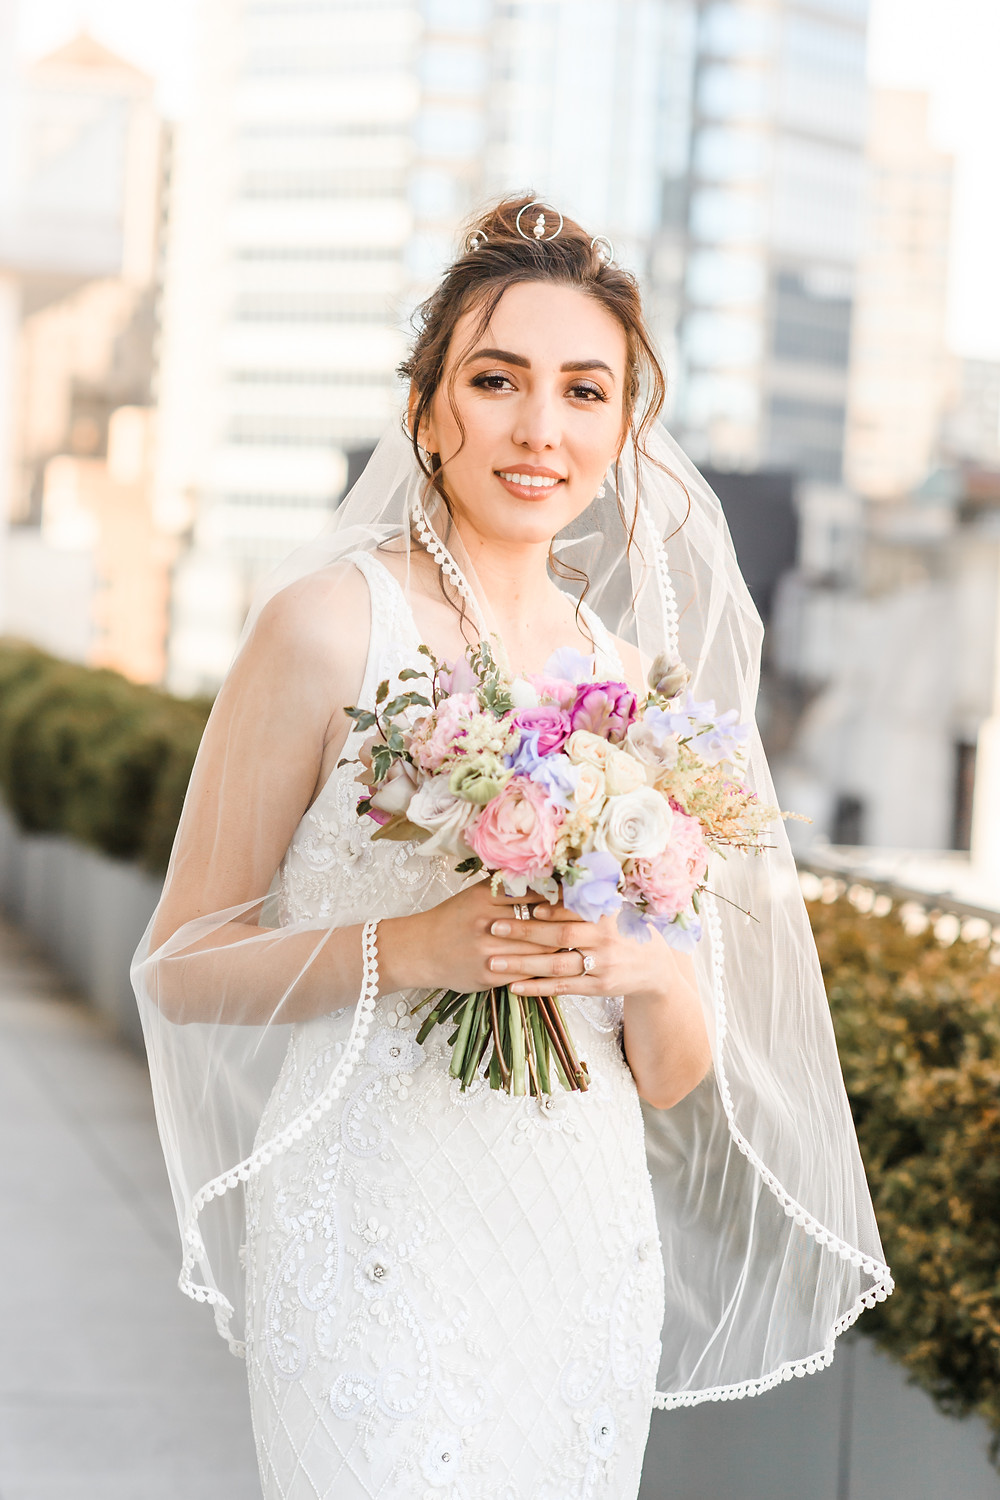 Manhattan Bride for winter wedding. Photo by Artvesta Studios